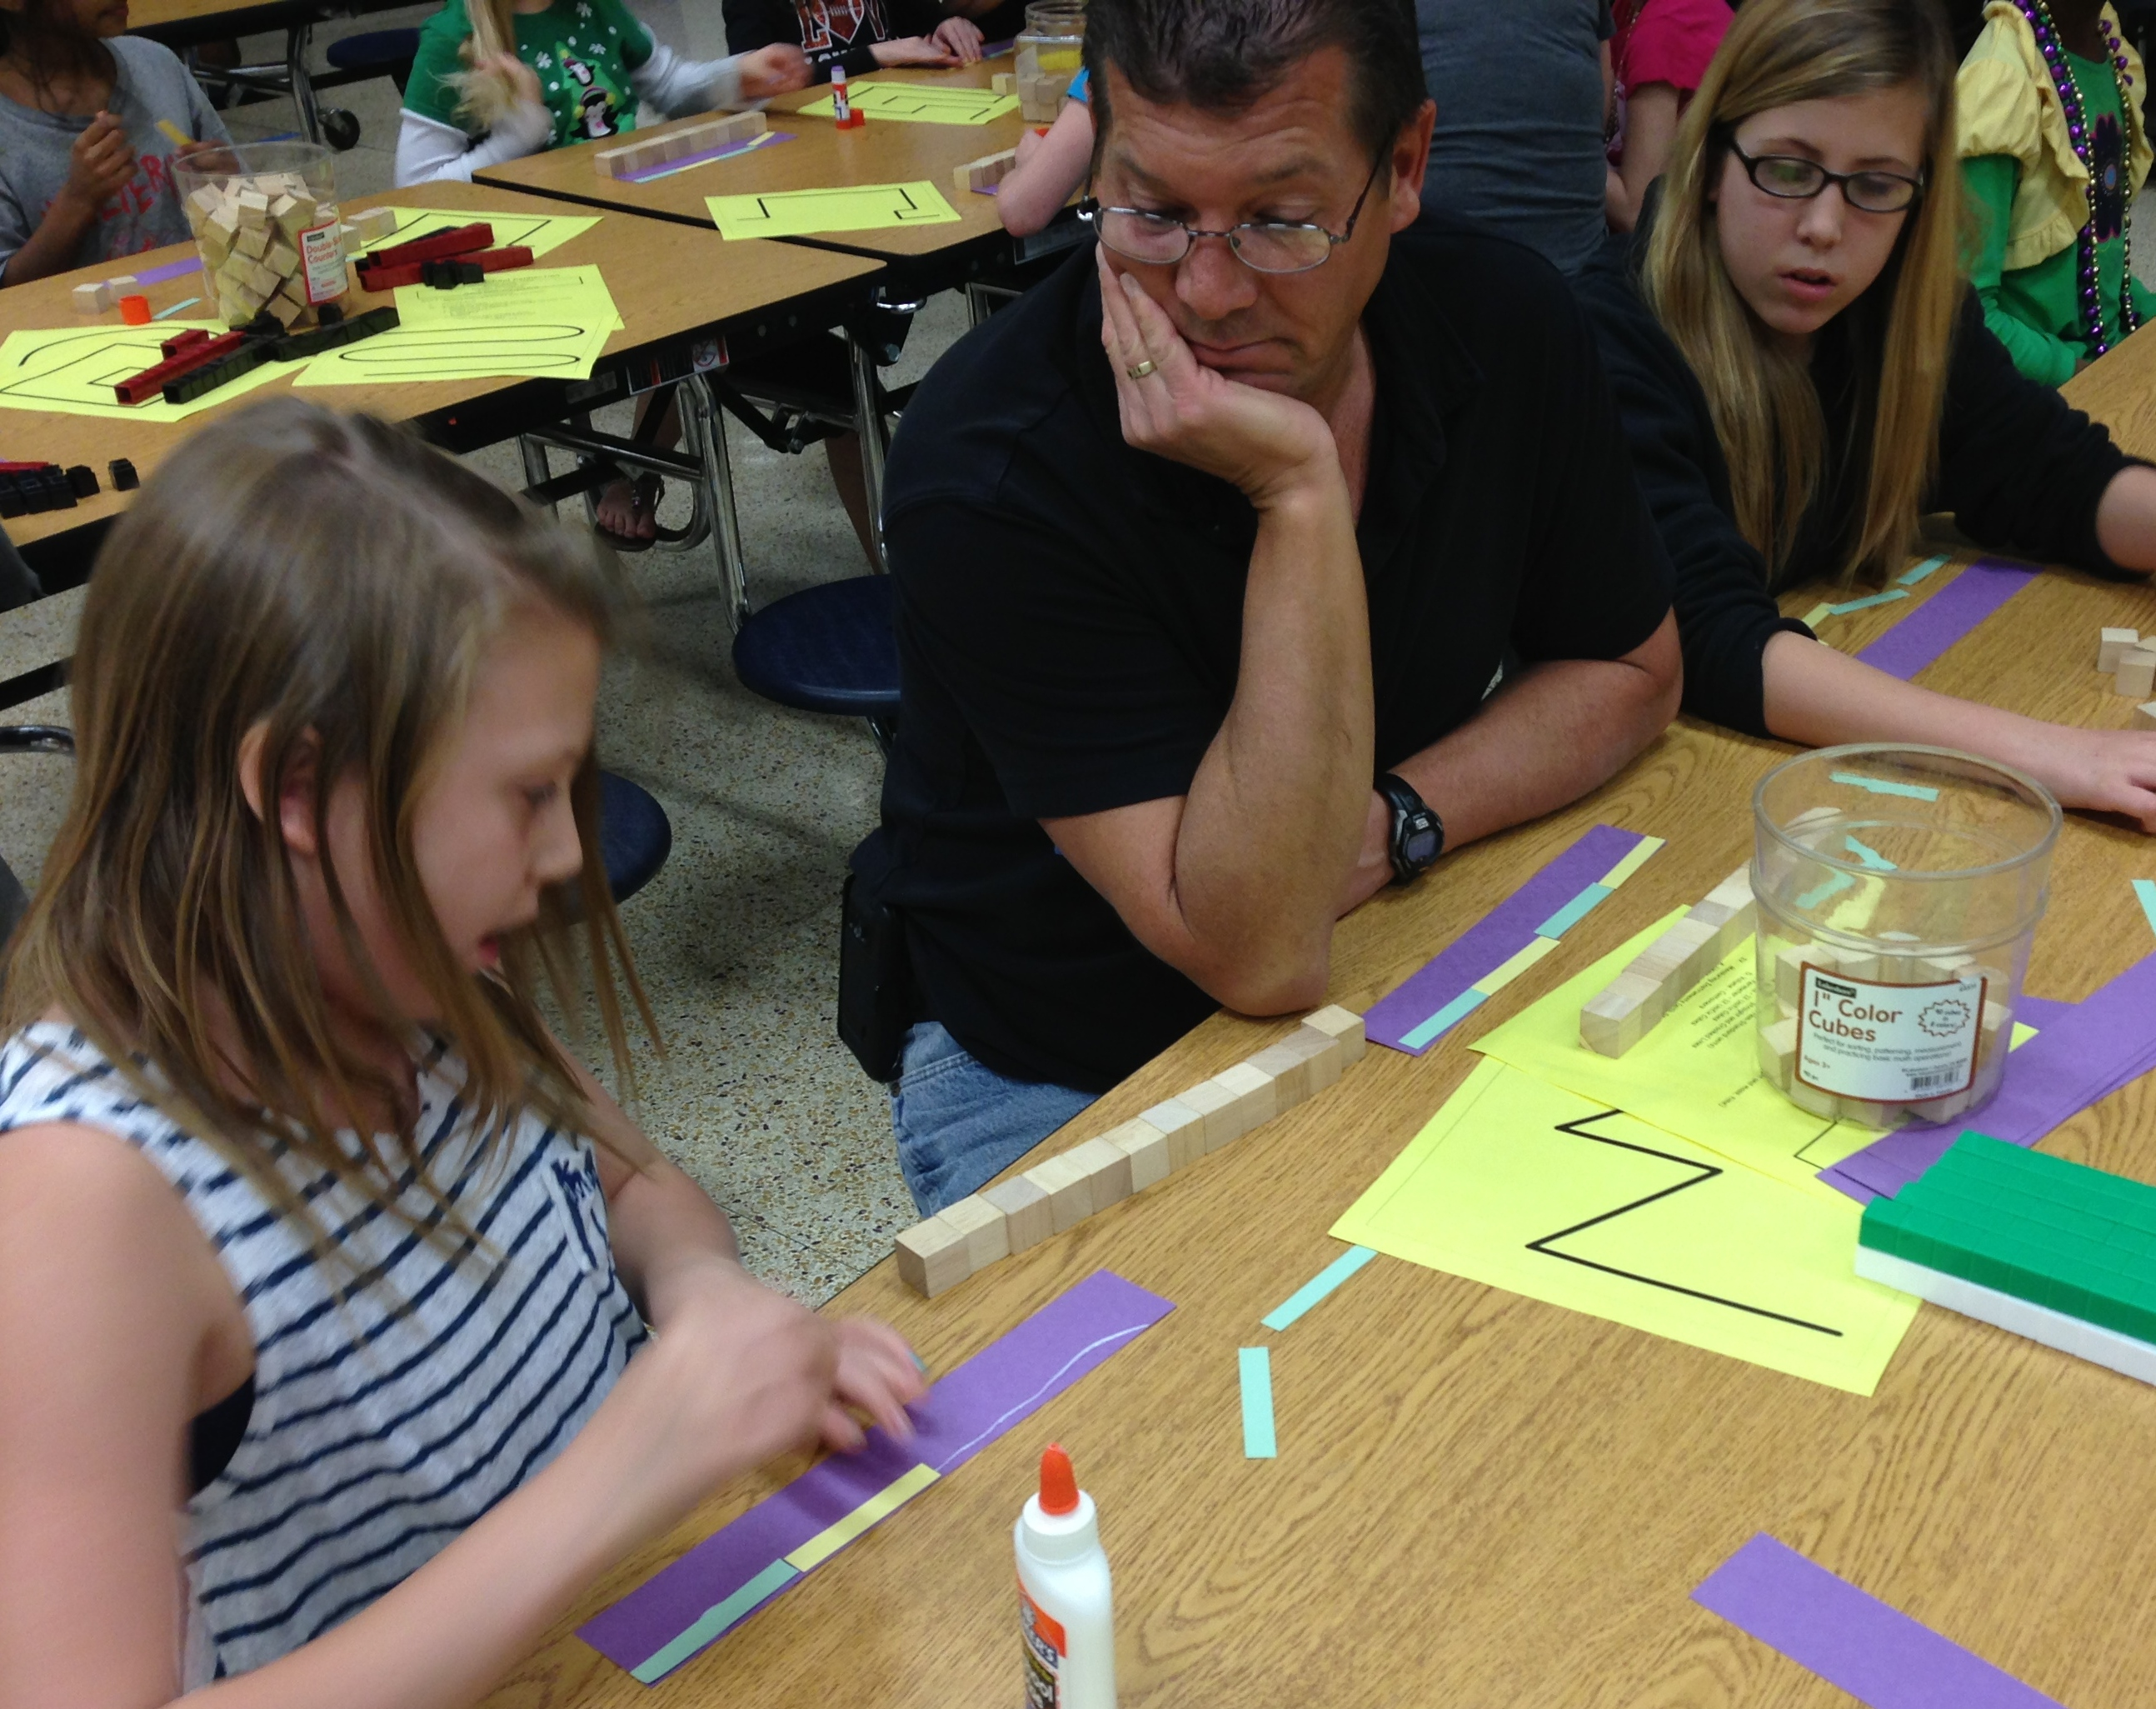 Students and parent working on math task